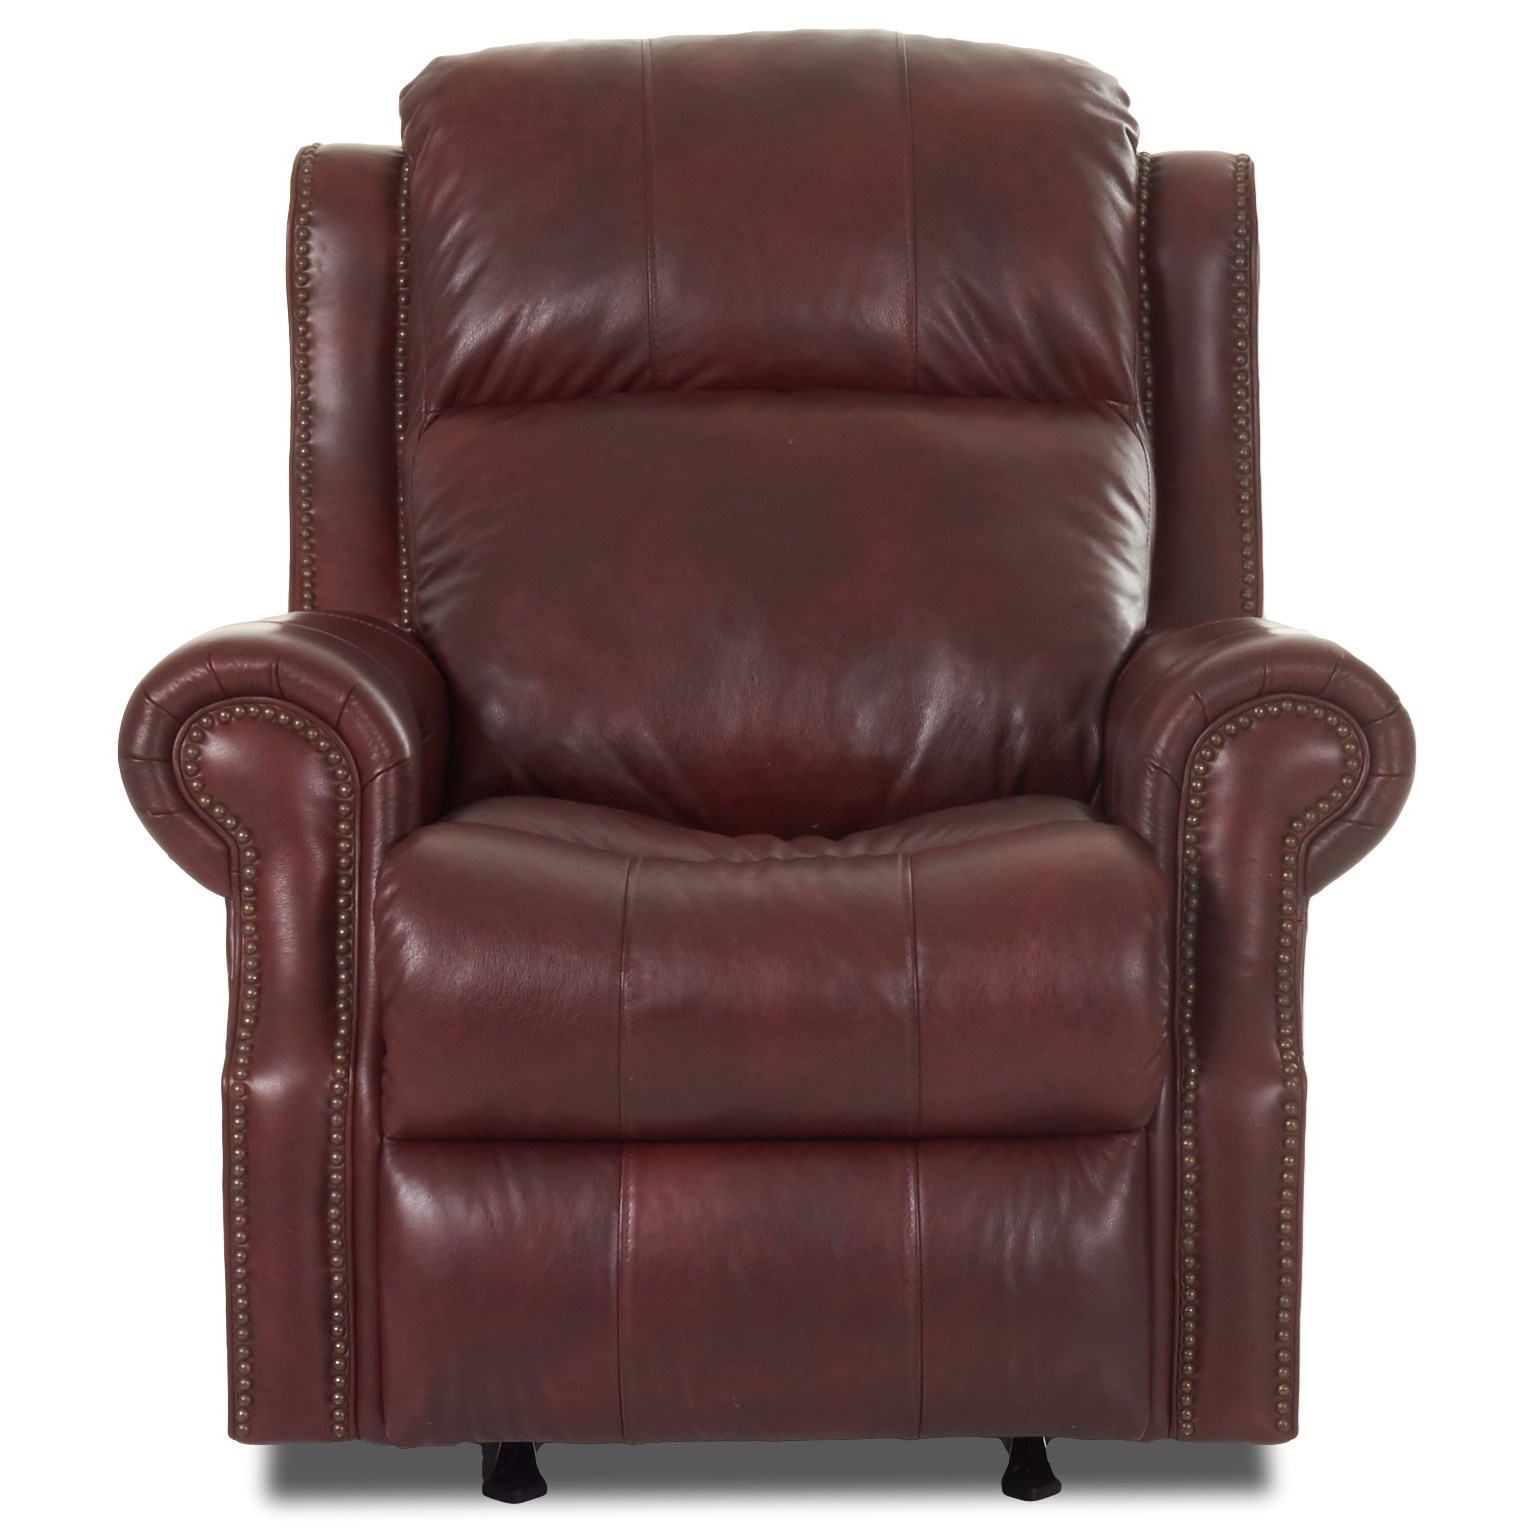 Vivio Power Rocking Reclining Chair w/ Pwr Head by Klaussner at Godby Home Furnishings